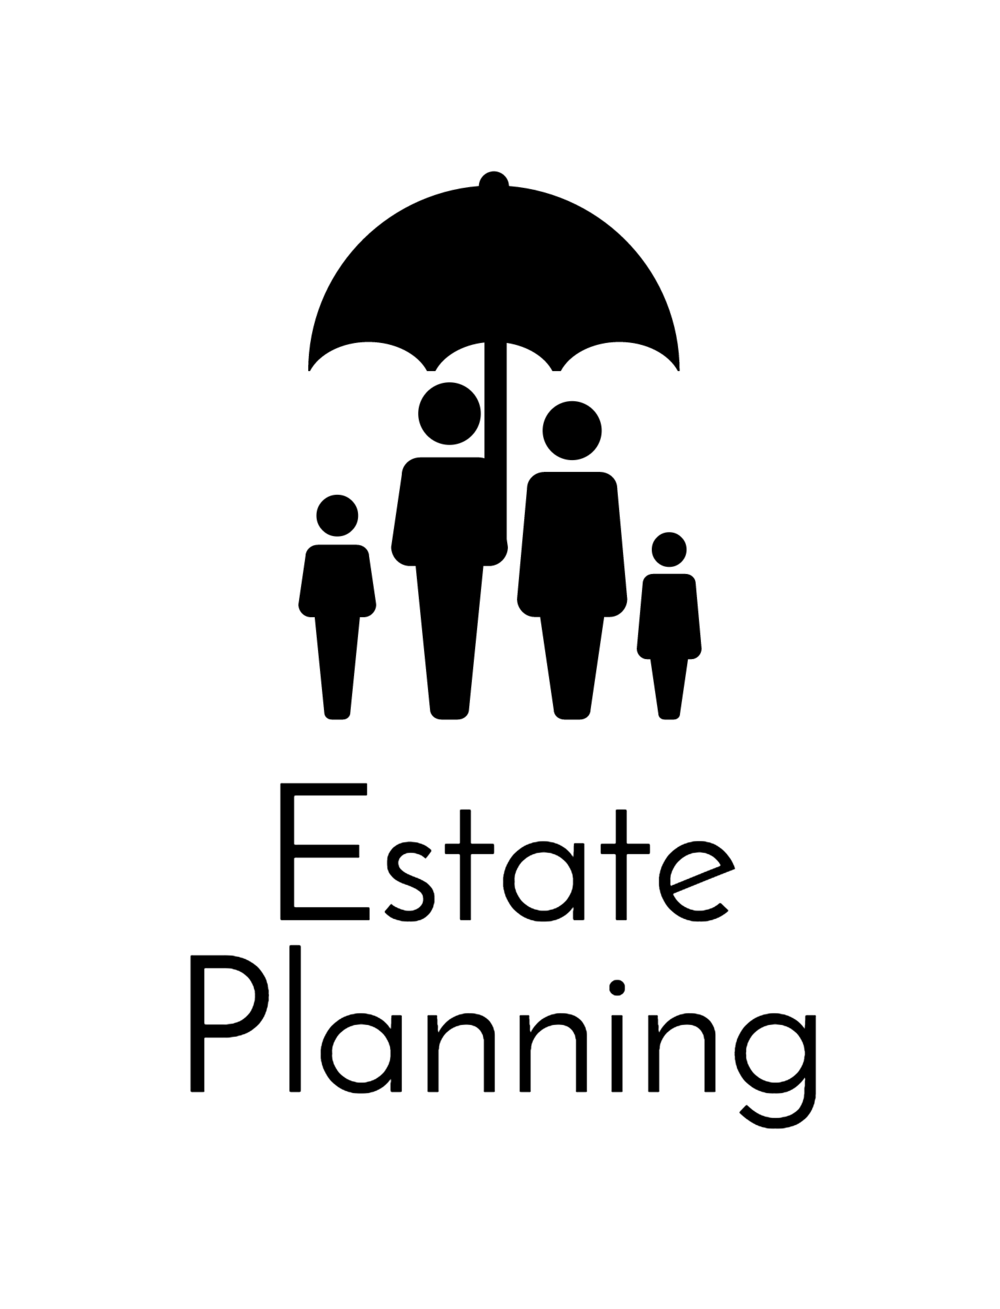 Estate-logo-black.png